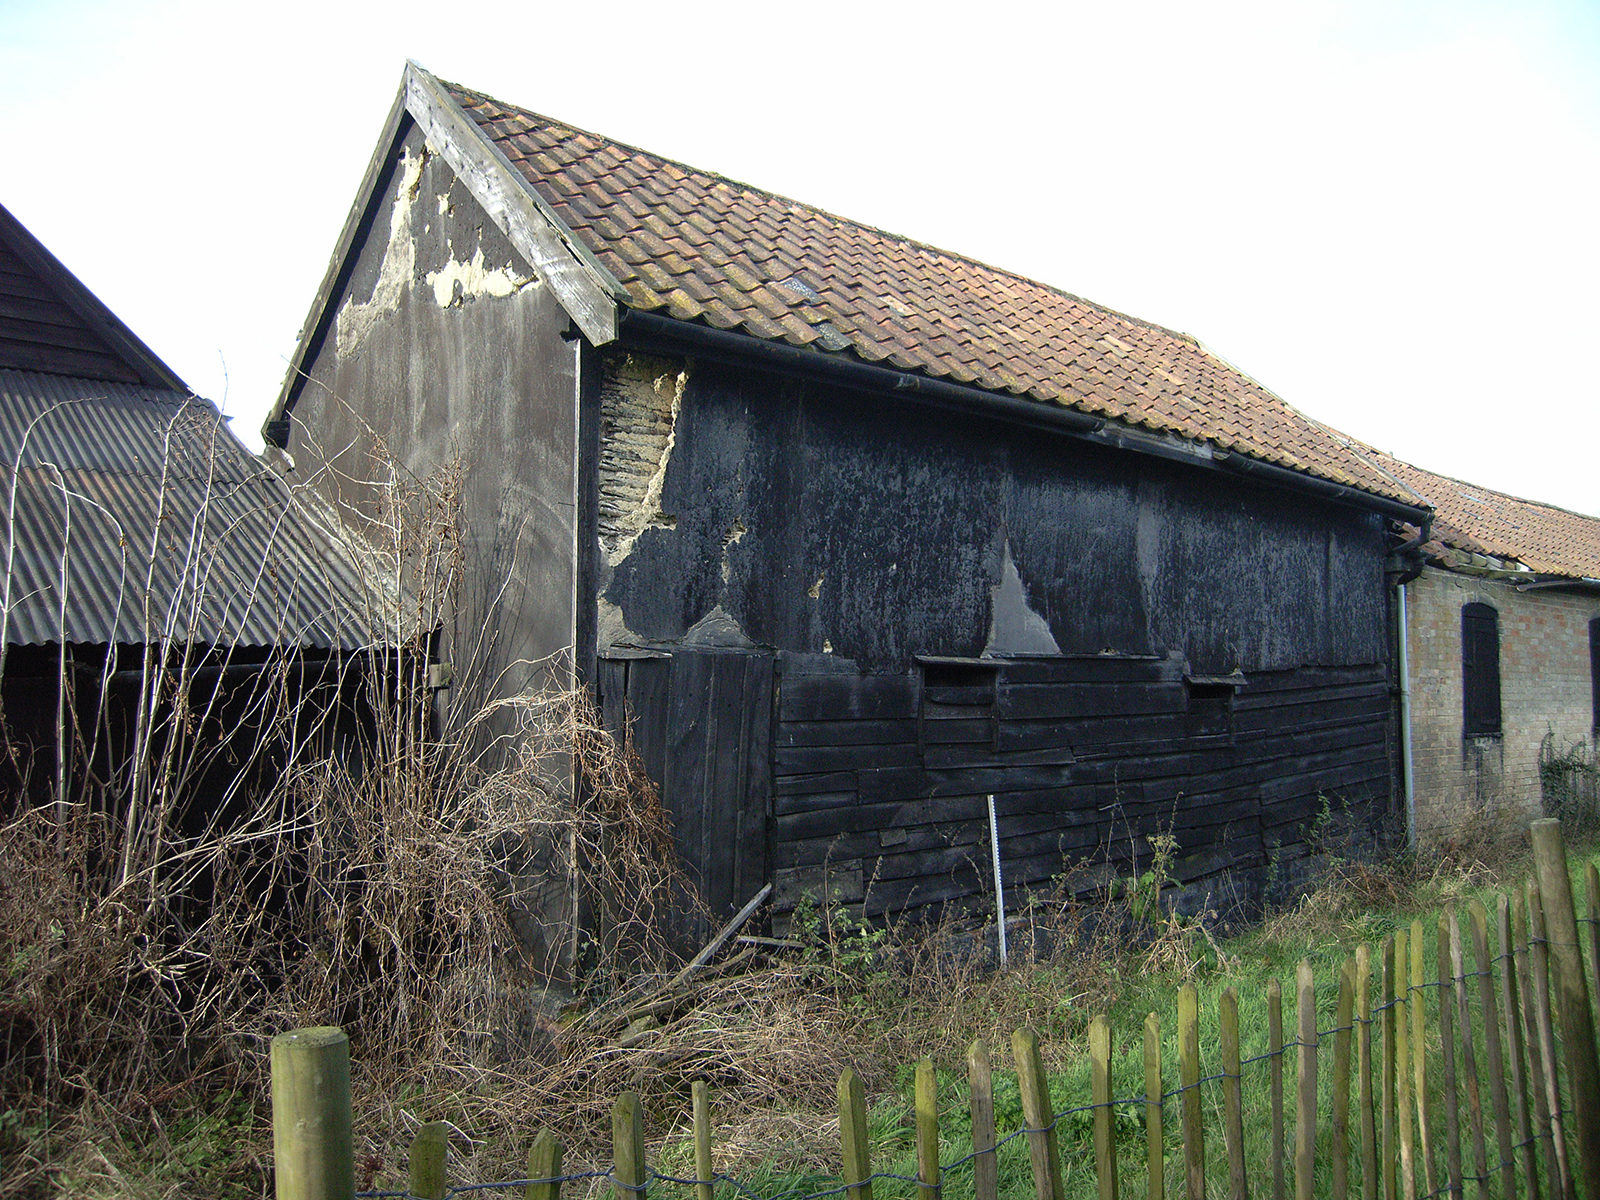 The South Barn at Lodge Farm, Wyverstone